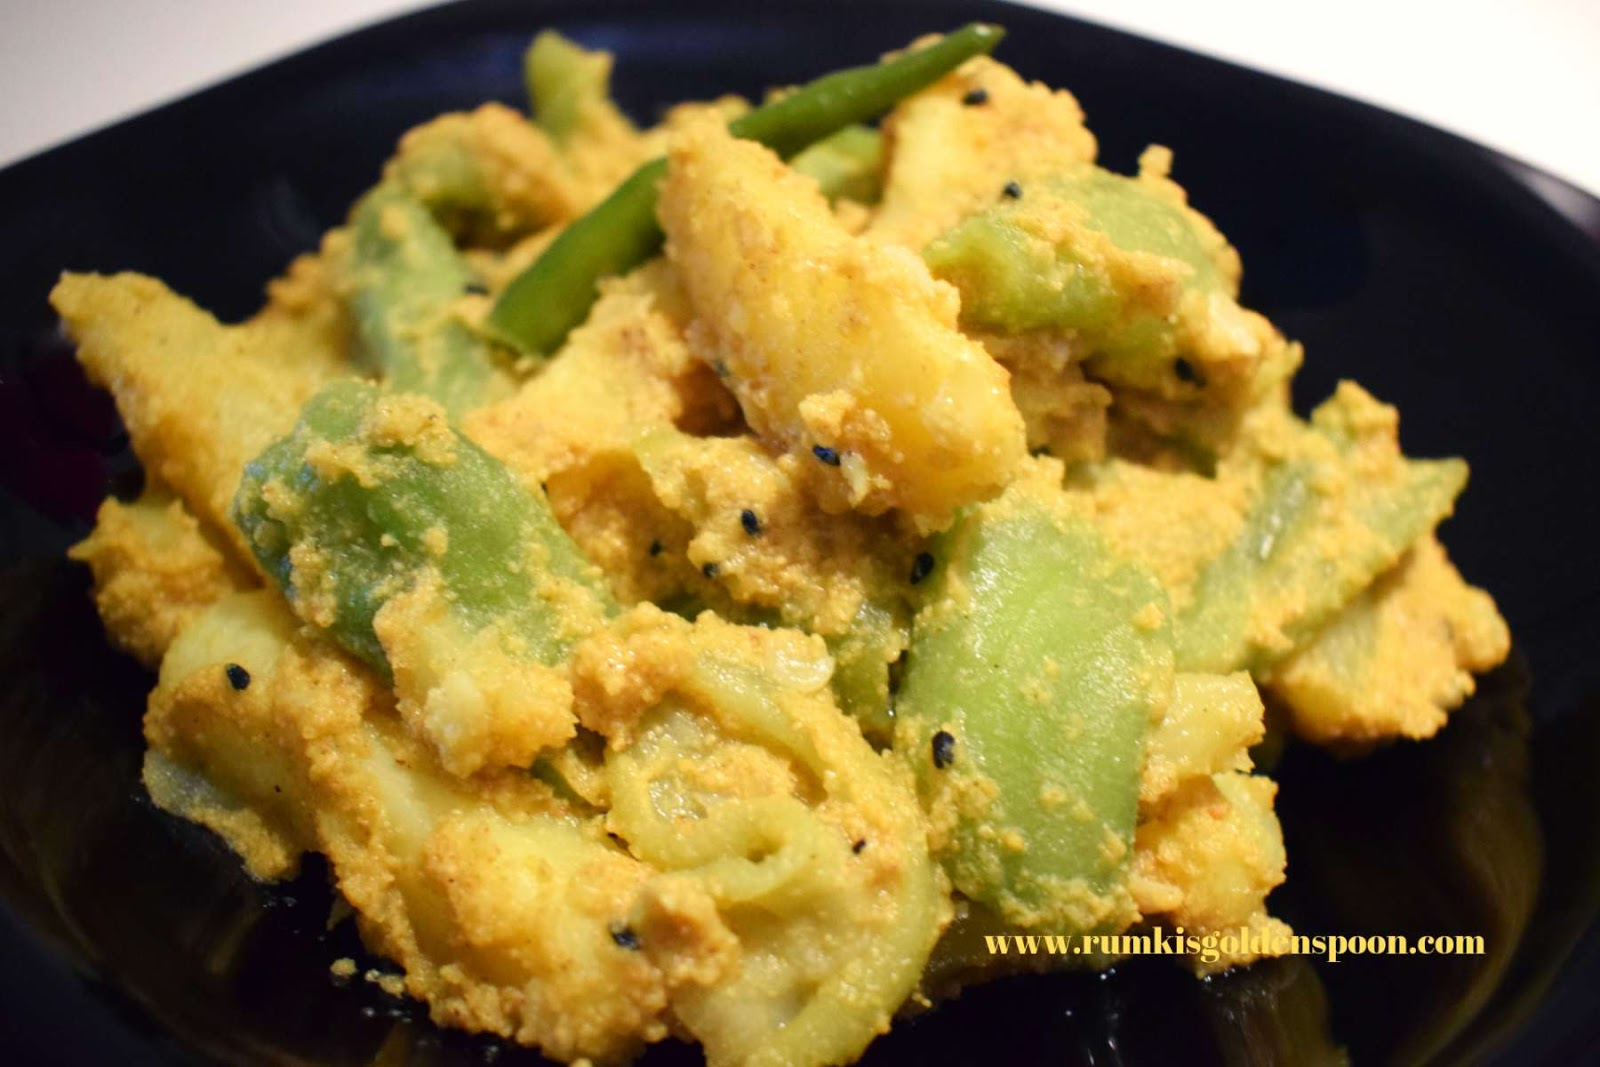 Jhinge aloo posto, jhinge aloo posto recipe, jhinge aloo posto Bengali recipe, how to make jhinge aloo posto, aloo jhinge posto sabji, recipe of jhinge posto, recipe of jhinge, recipe of jhinge aloo posto, Bengali recipe jhinge posto, niramish tarkari recipe, niramish tarkari, niramish recipe, Bengali niramish recipe, bengali traditional food, traditional food of Bengali, traditional bengali food, posto recipe, recipe with posto, poppy seeds recipe, Indian recipe, Bengali recipes, Bengali recipe, Bengali food, homemade Bengali food, bengali veg recipe, bengali vegetable recipe, recipe with jhinge, recipe with ridge gourd, no onion no garlic recipe, Rumki's Golden Spoon